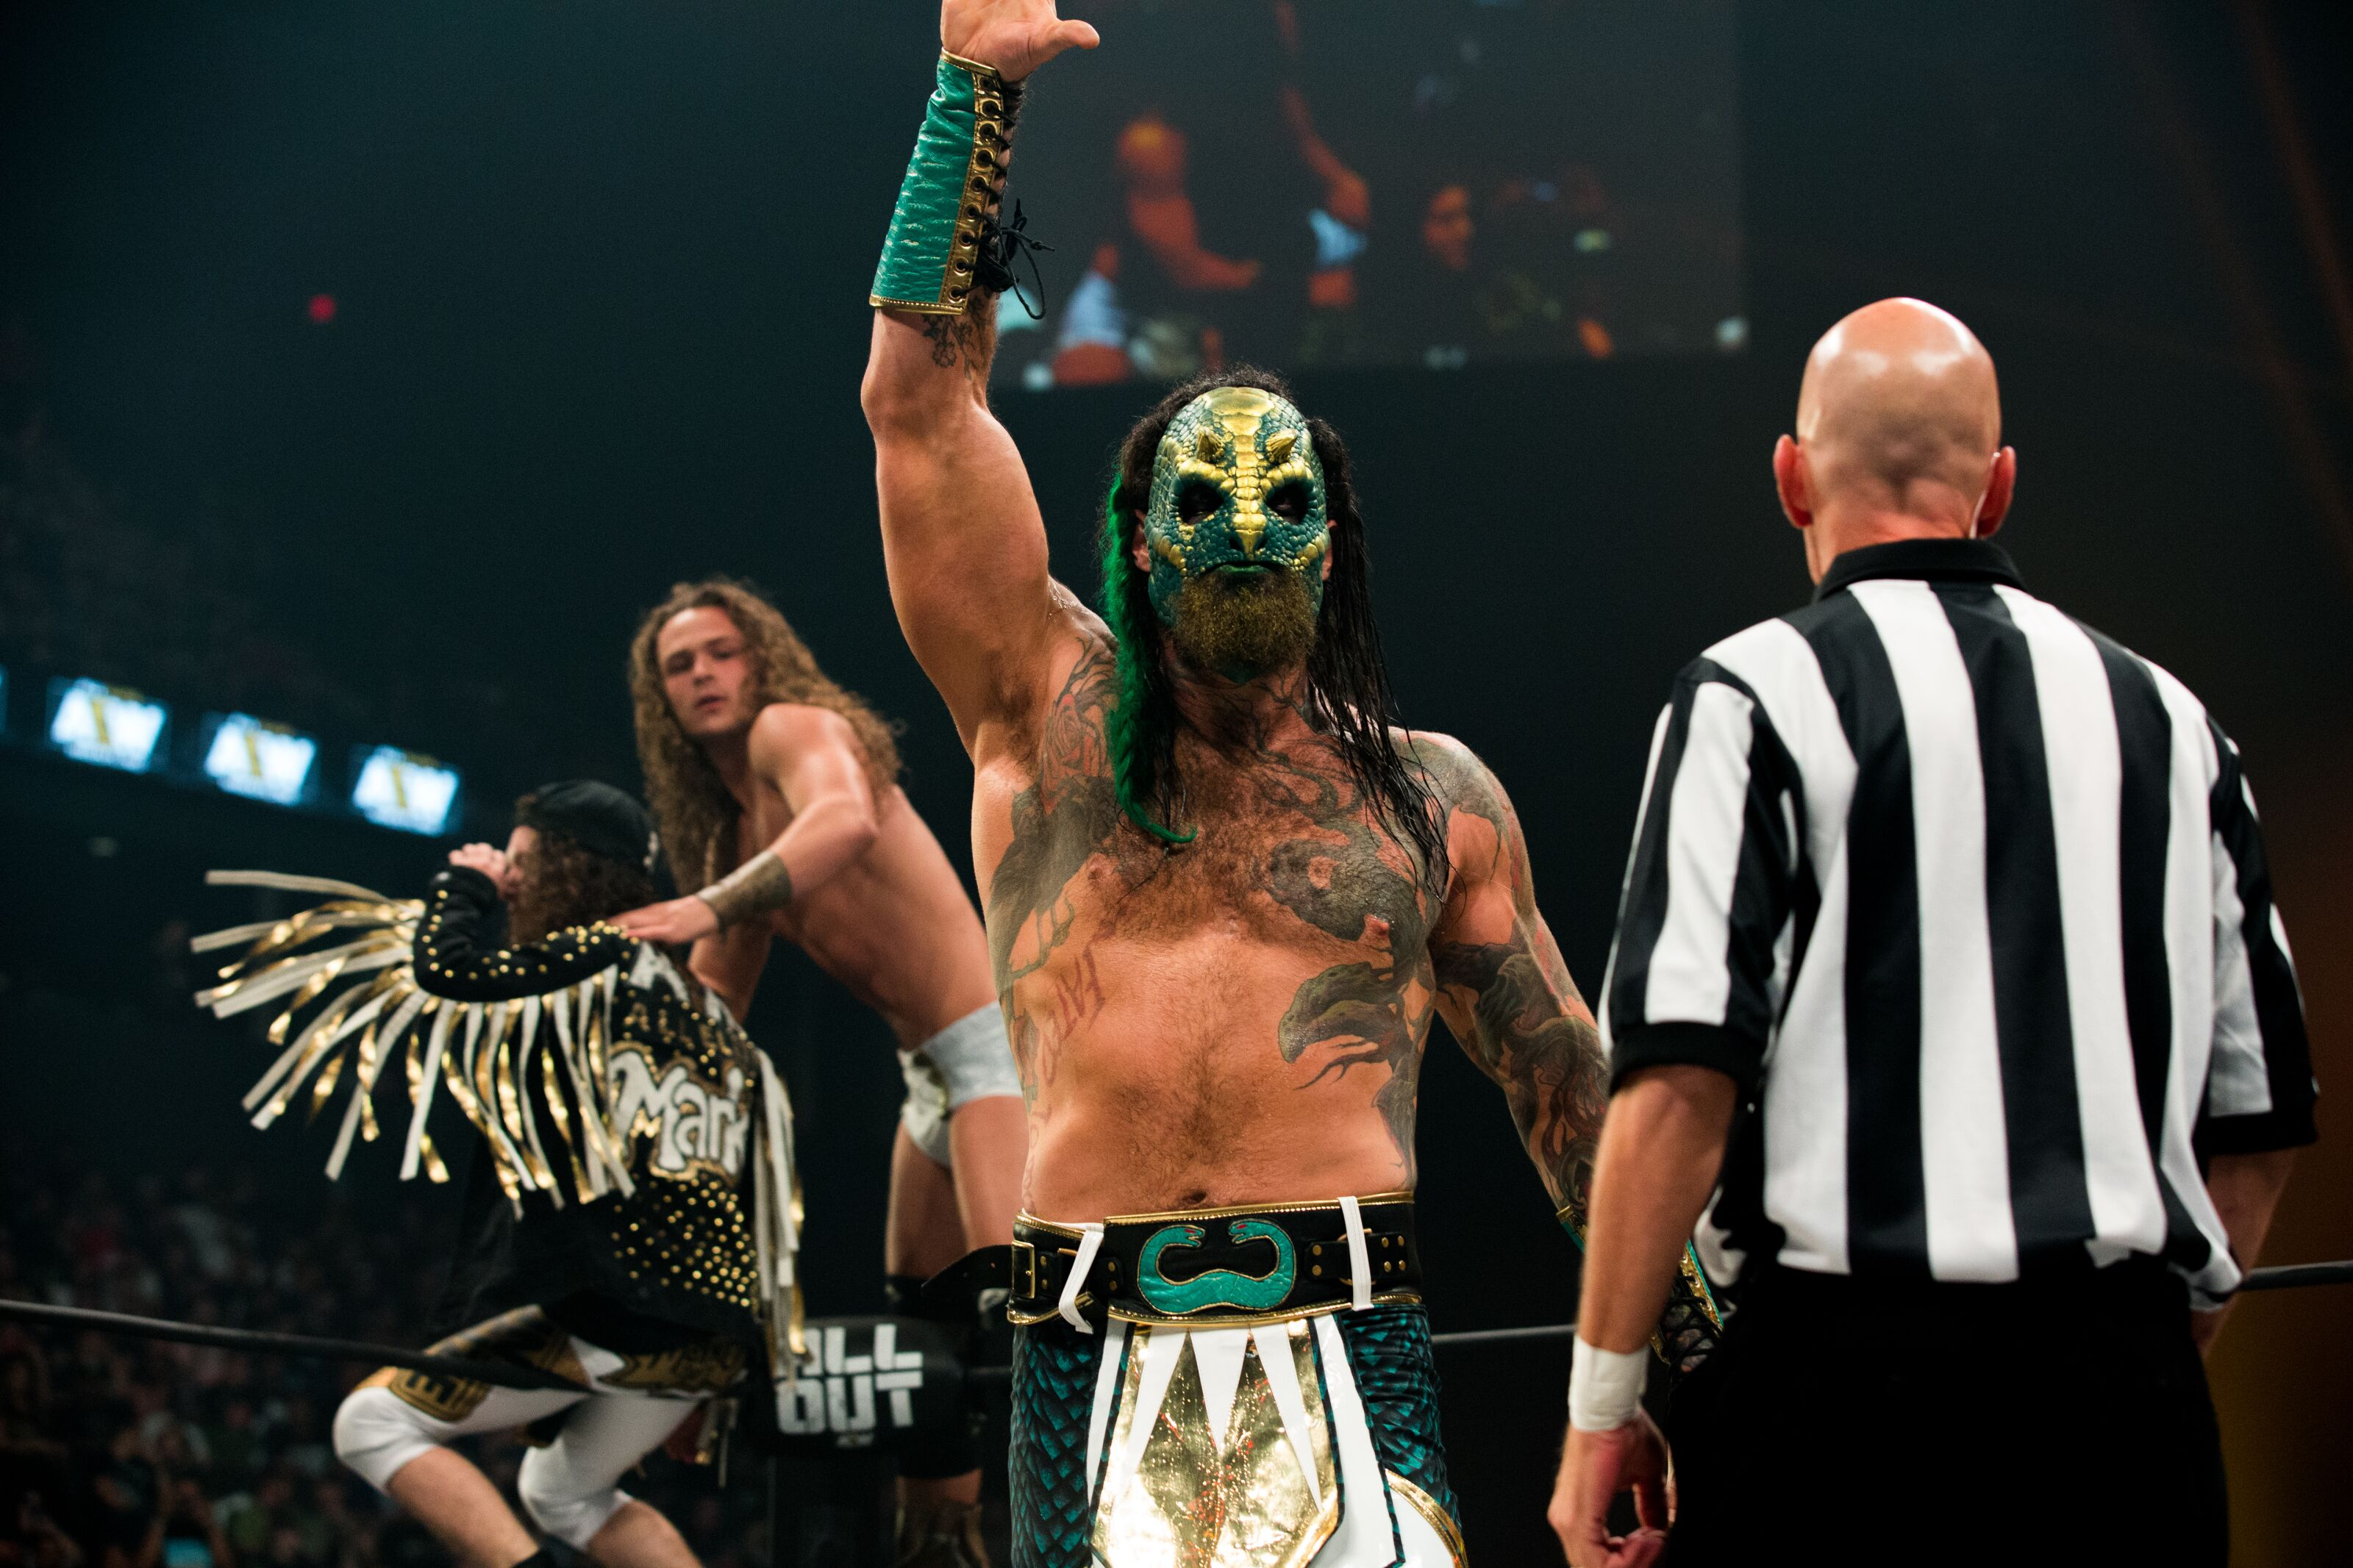 AEW: Five stars poised for a breakout year in 2020